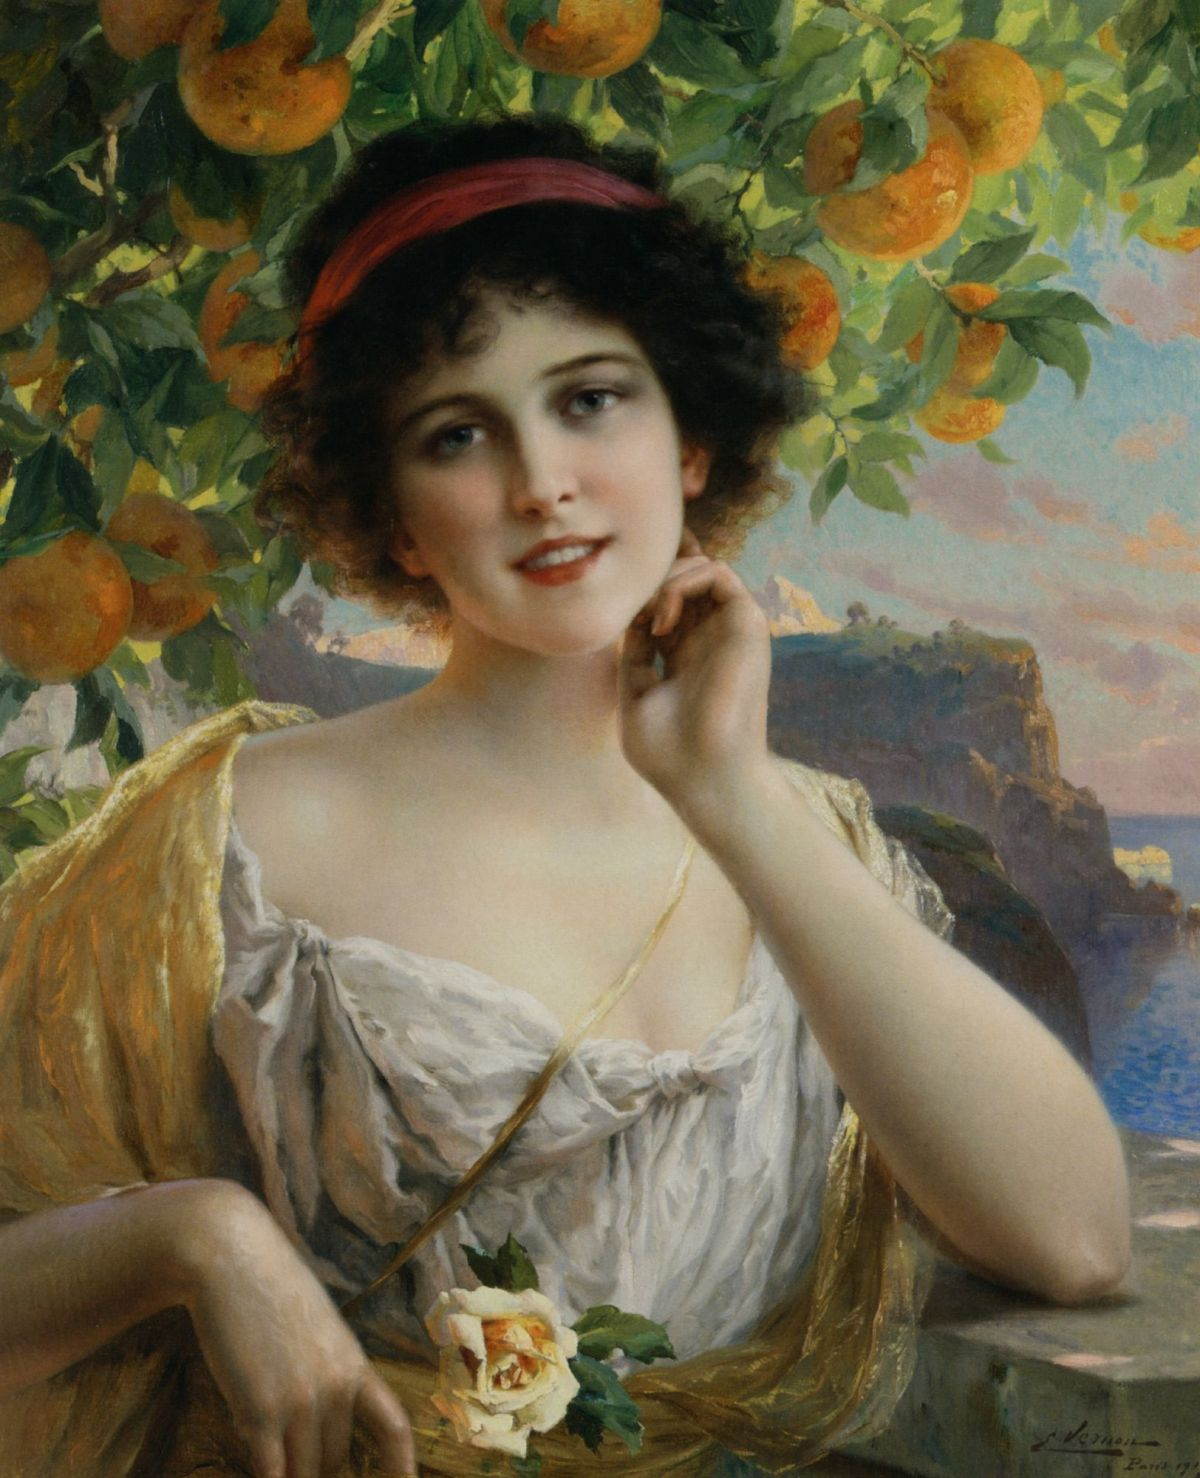 Beauty Under the Orange Tree by Emile Vernon